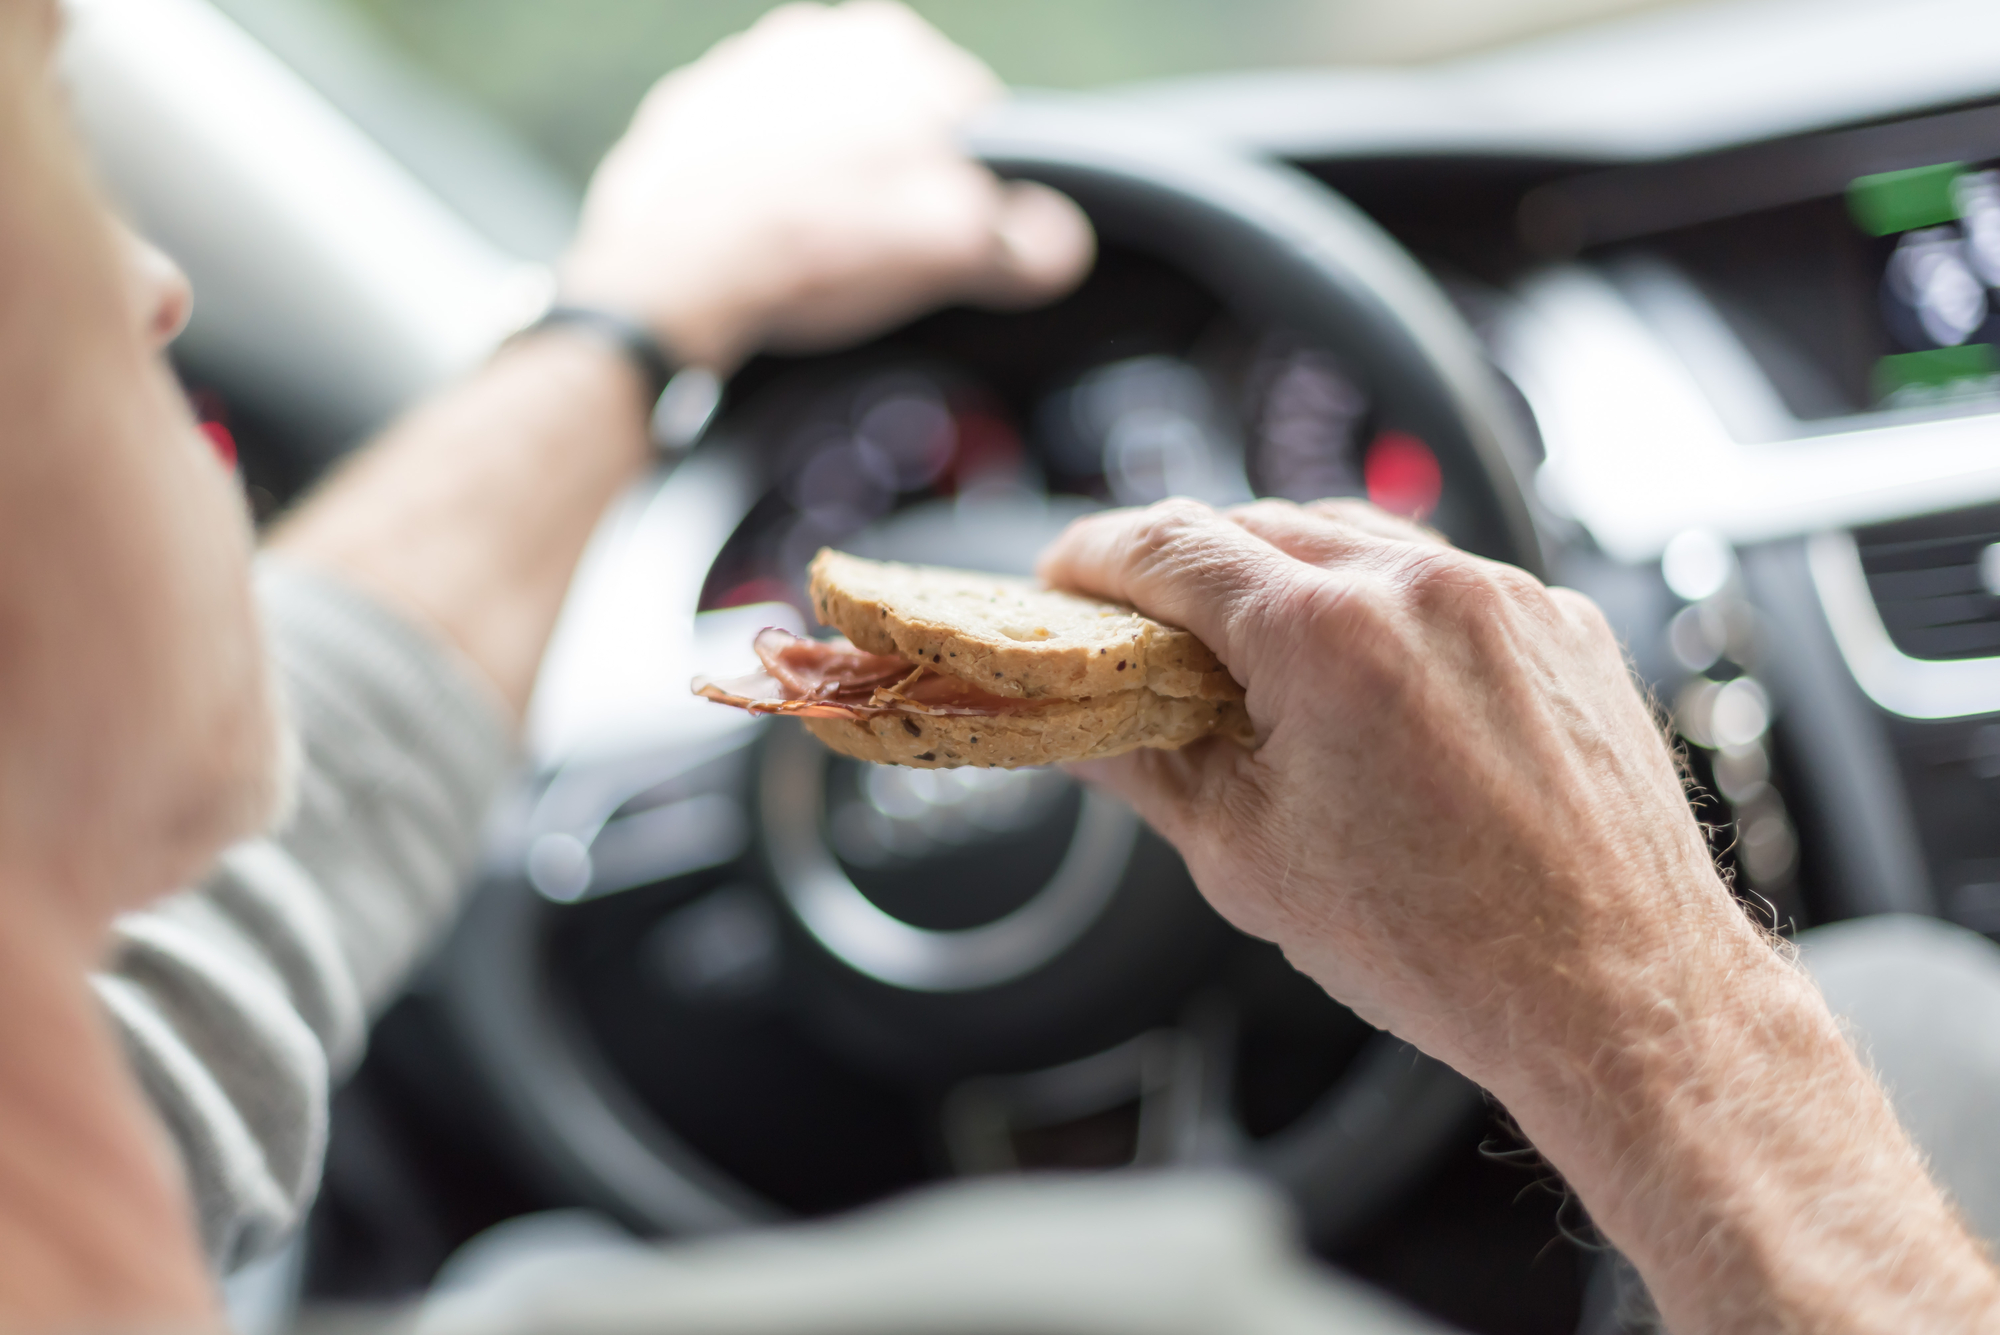 Driver eating a sandwich while